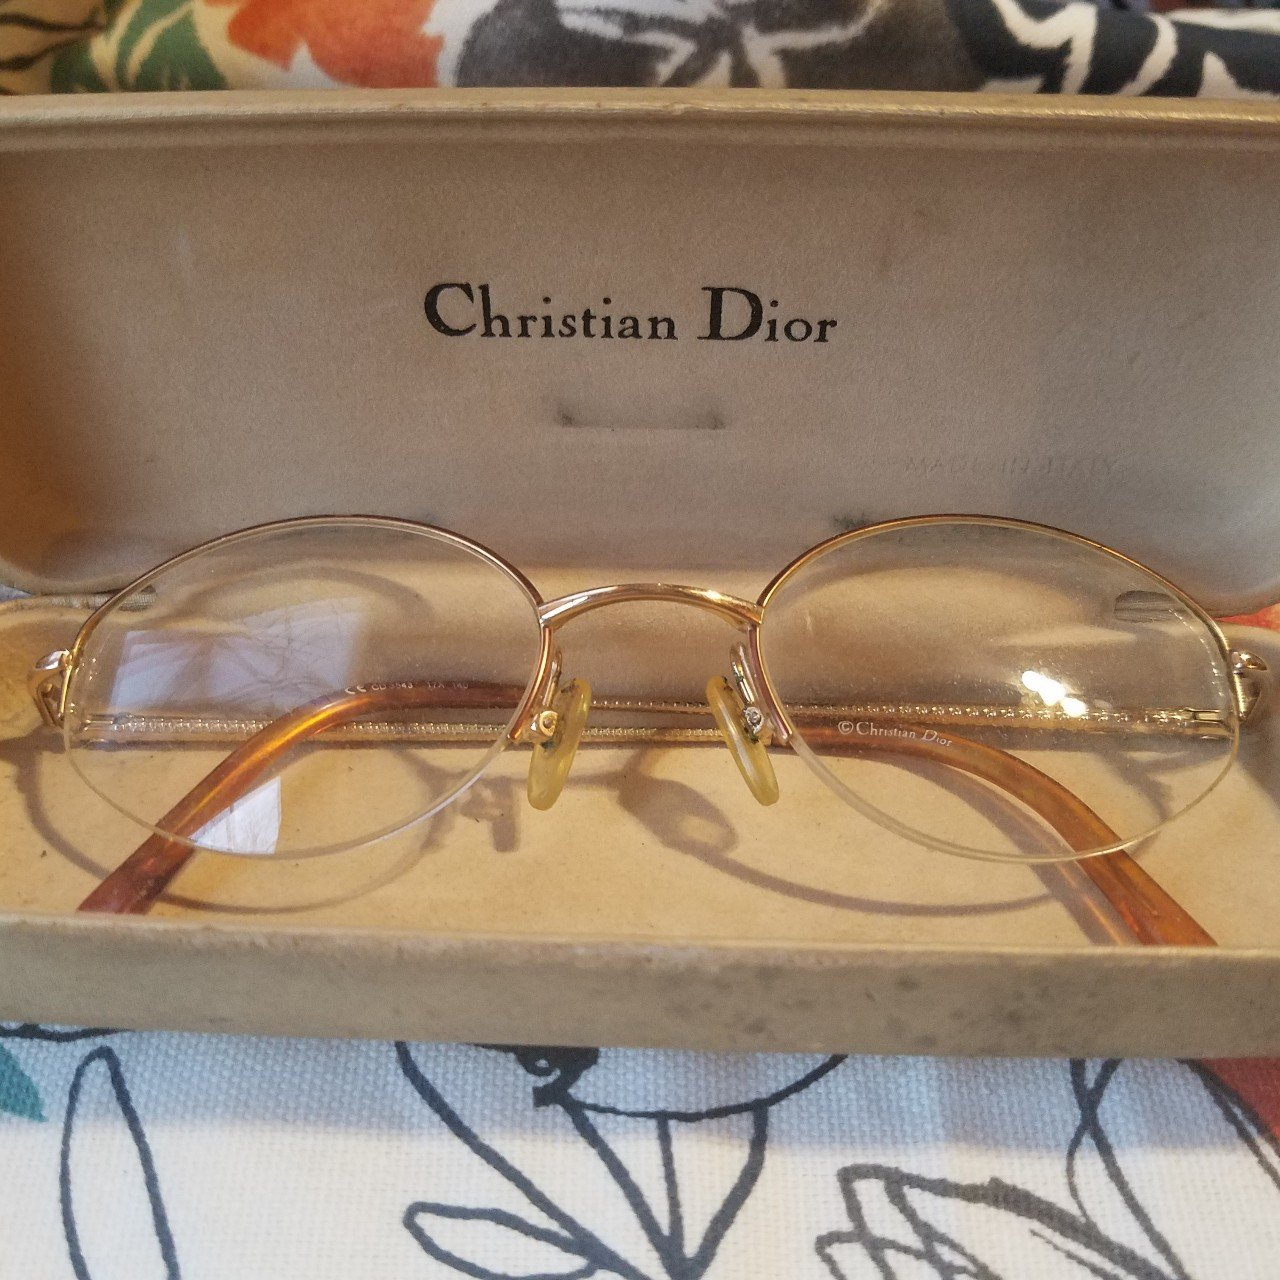 73867a79c92 Vintage Christian Dior glasses in original case. Glasses to - Depop